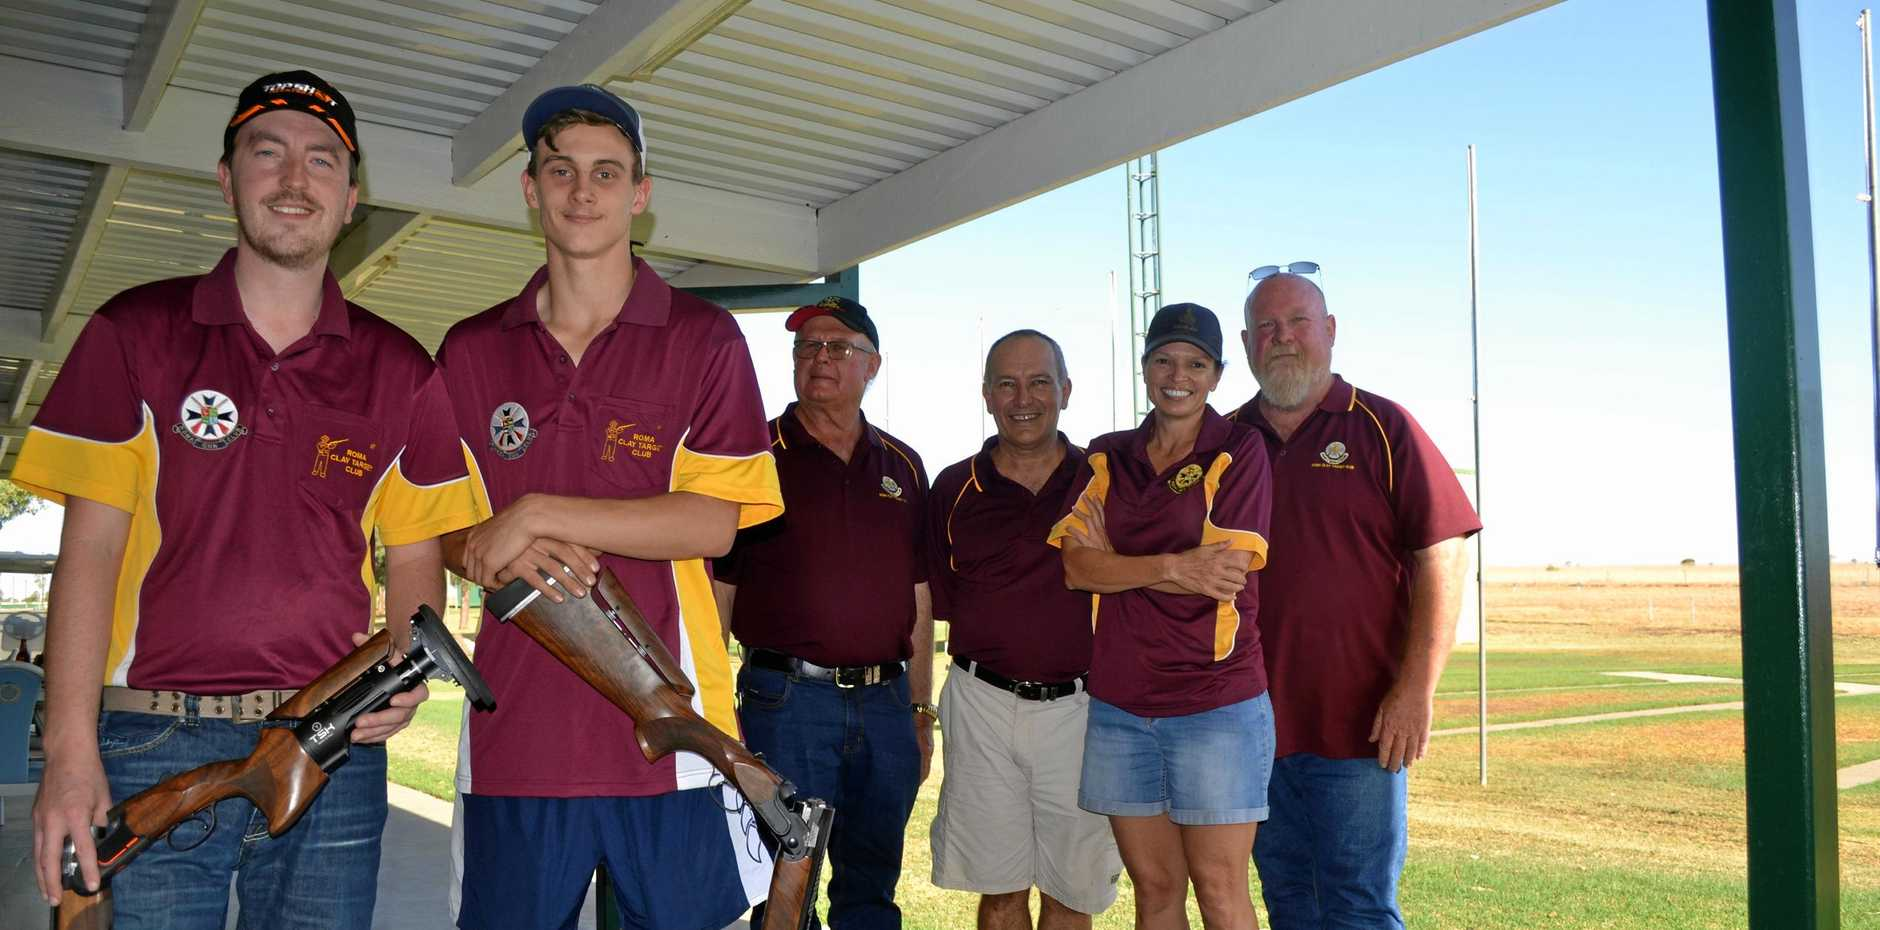 CRACK SHOTS: The Roma team for the 2019 Down the Line national titles includes (from left) Patrick Magee, Brodie Hewitt, Terrie Busiko, Tony Allen, Sharon Purcell and Andrew Whyte.